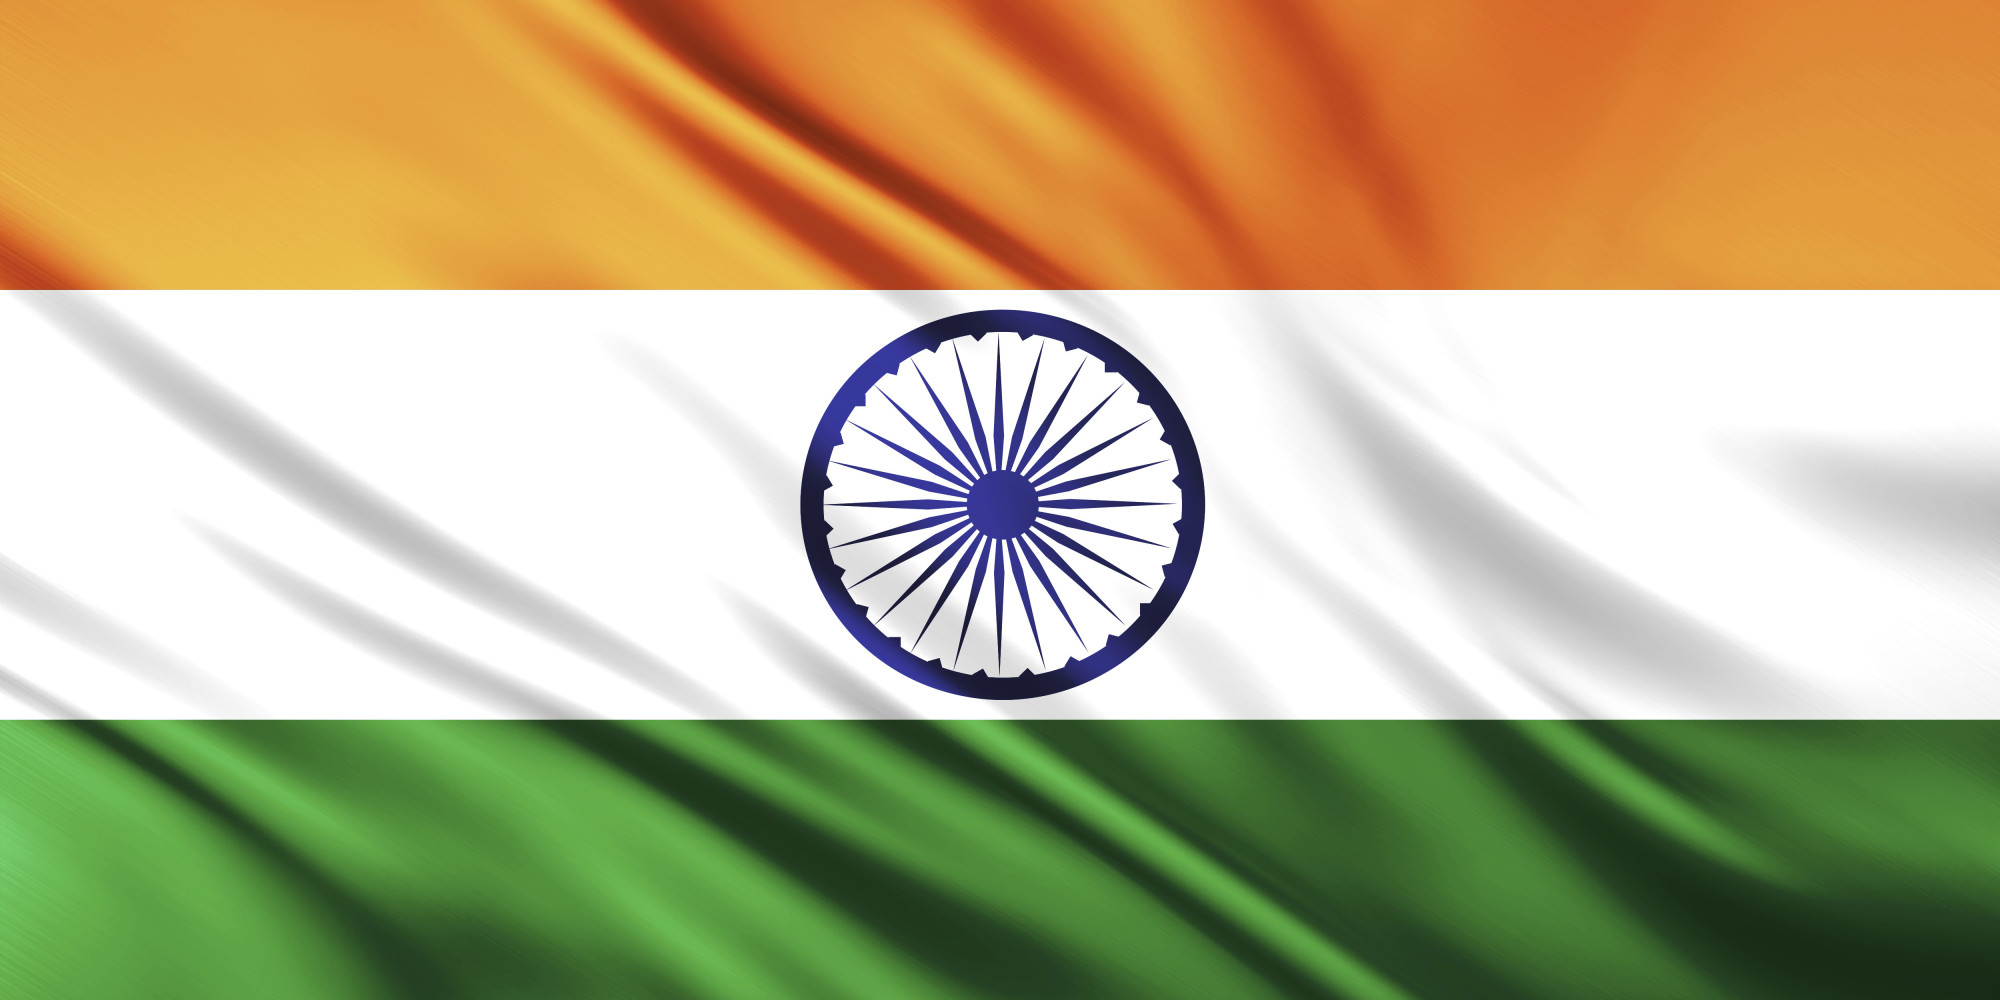 India S Flag: Amazon Canada Learns The Hard Way Not To Step On India's Flag